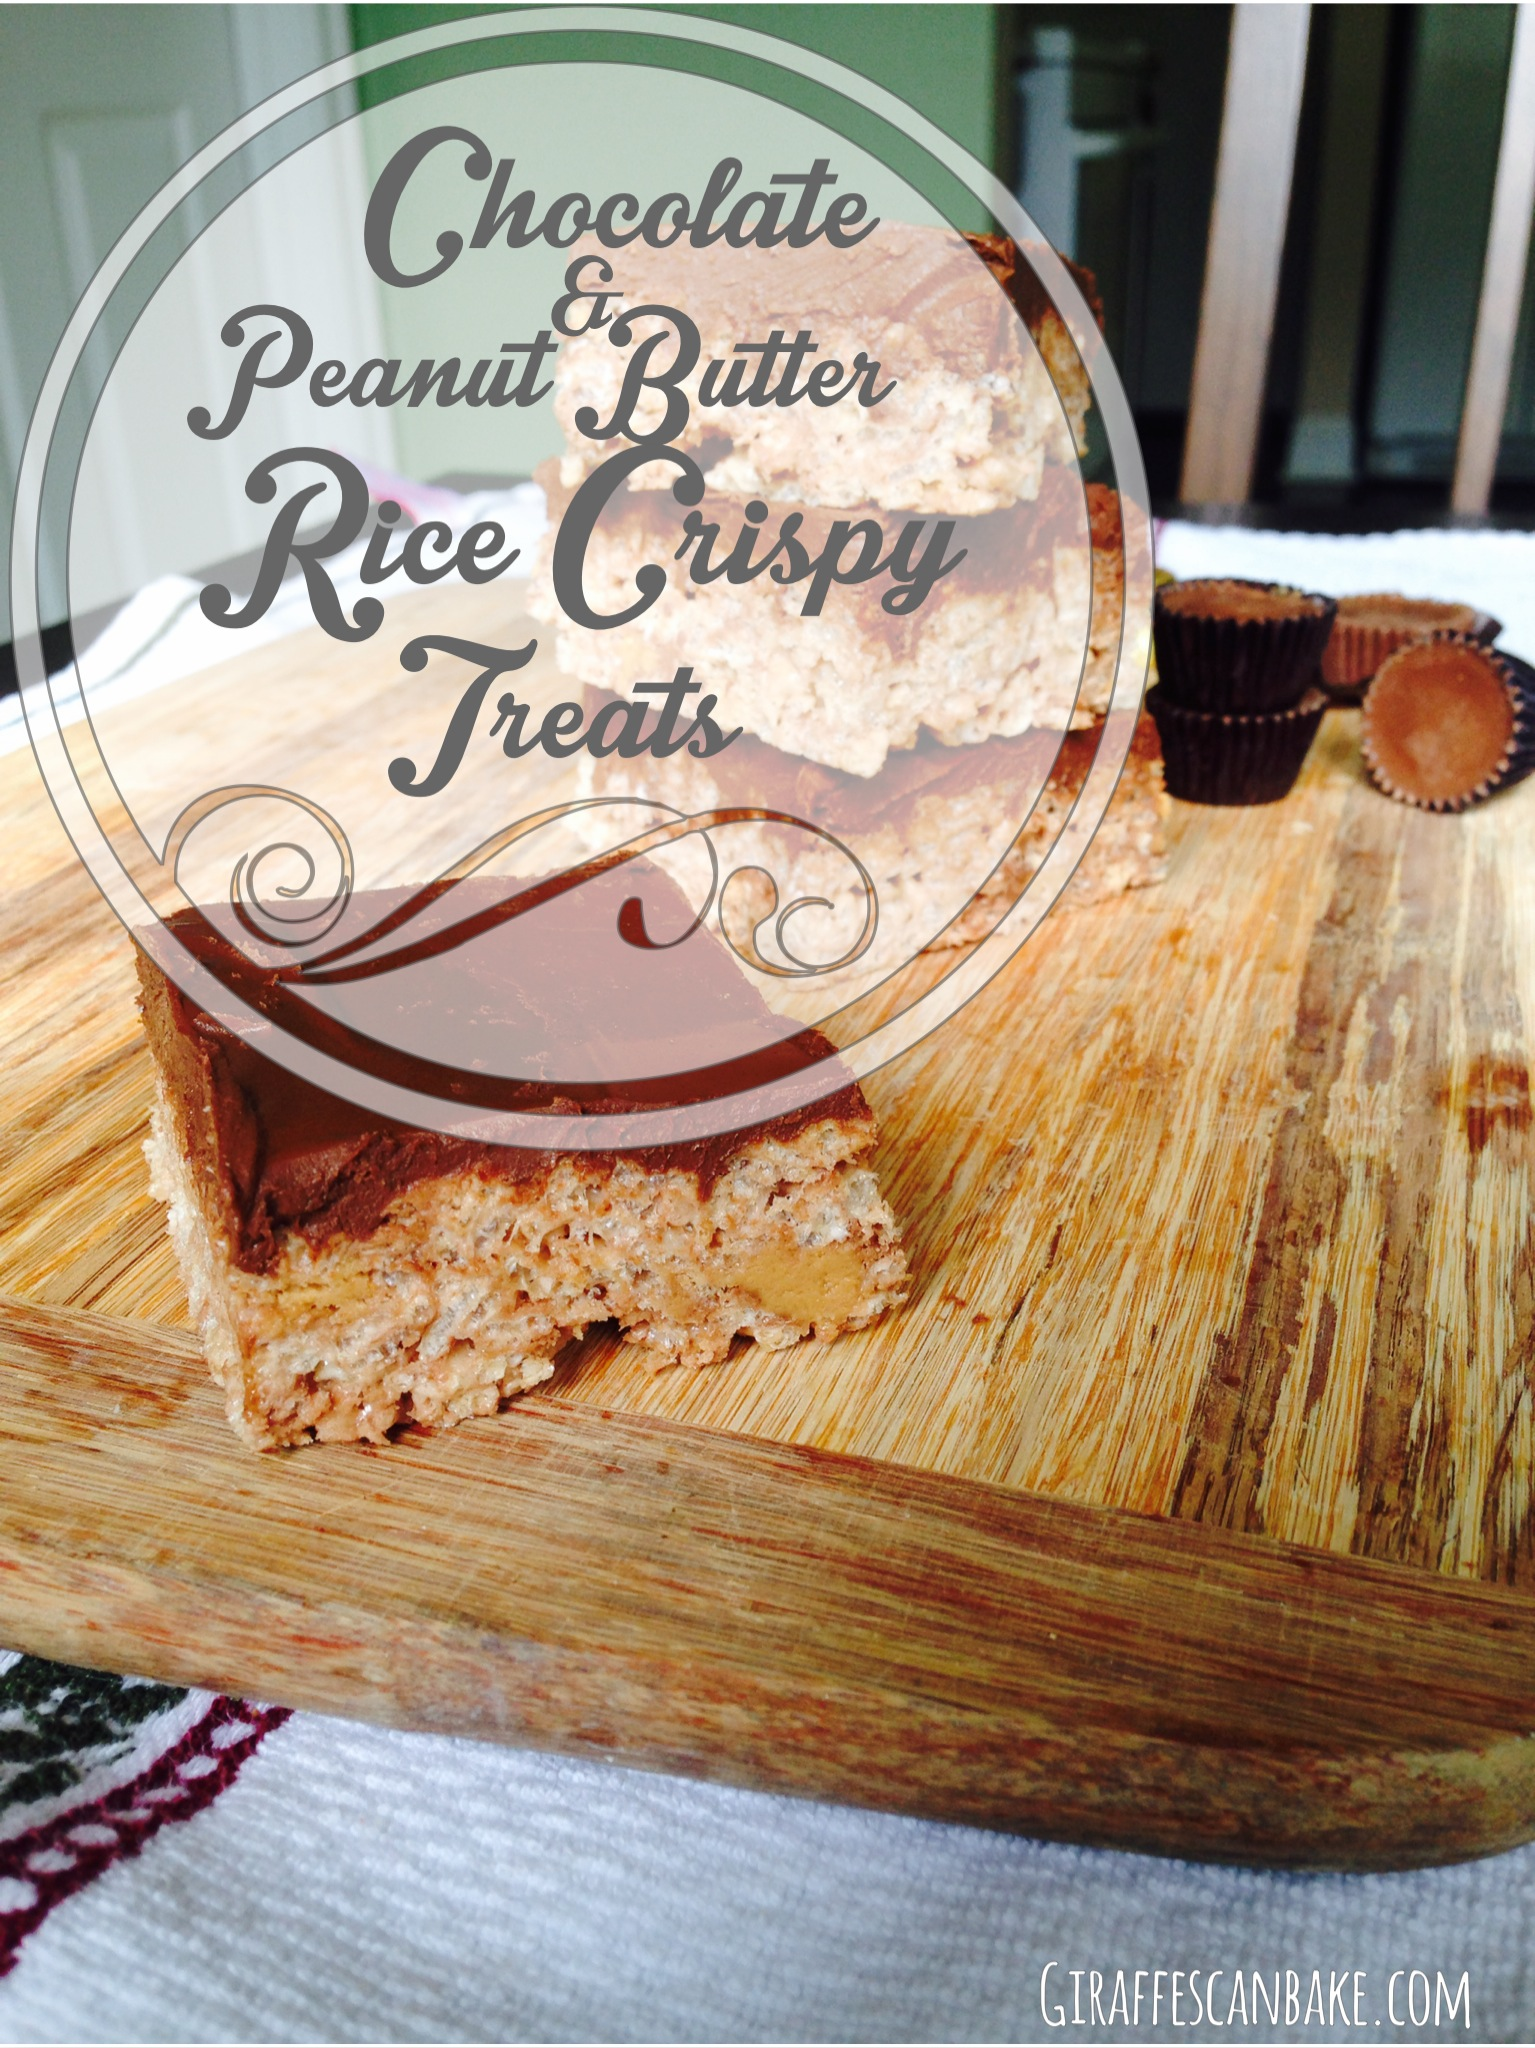 Chocolate and Peanut Butter Rice Crispy Treats